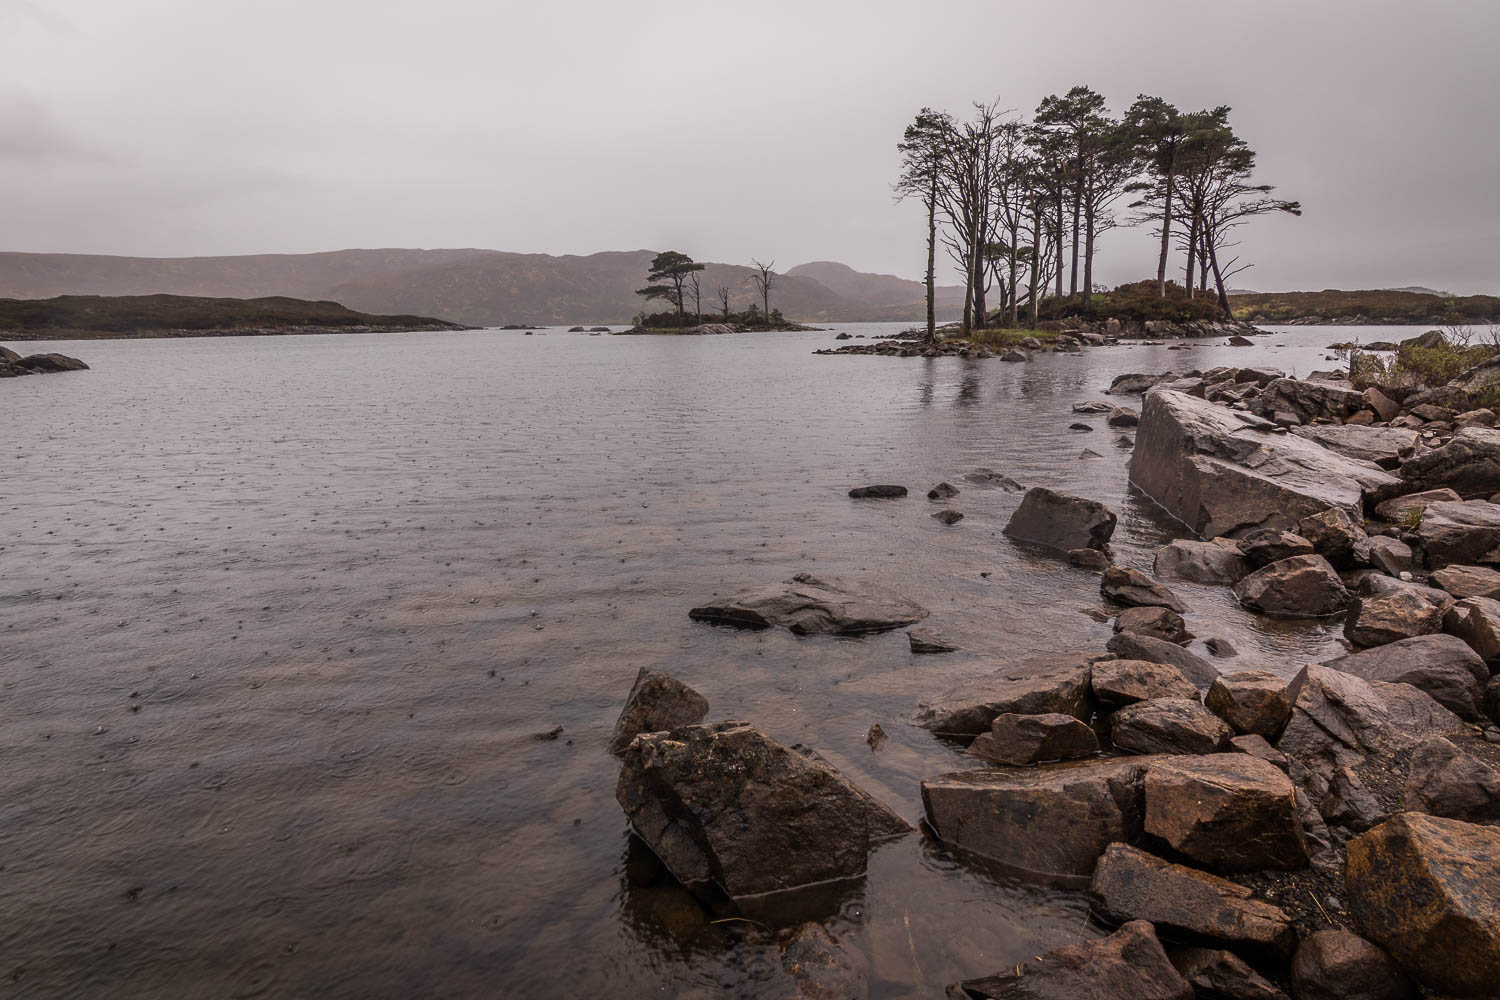 Caledonian Pines on Loch Assynt in the pouring rain.